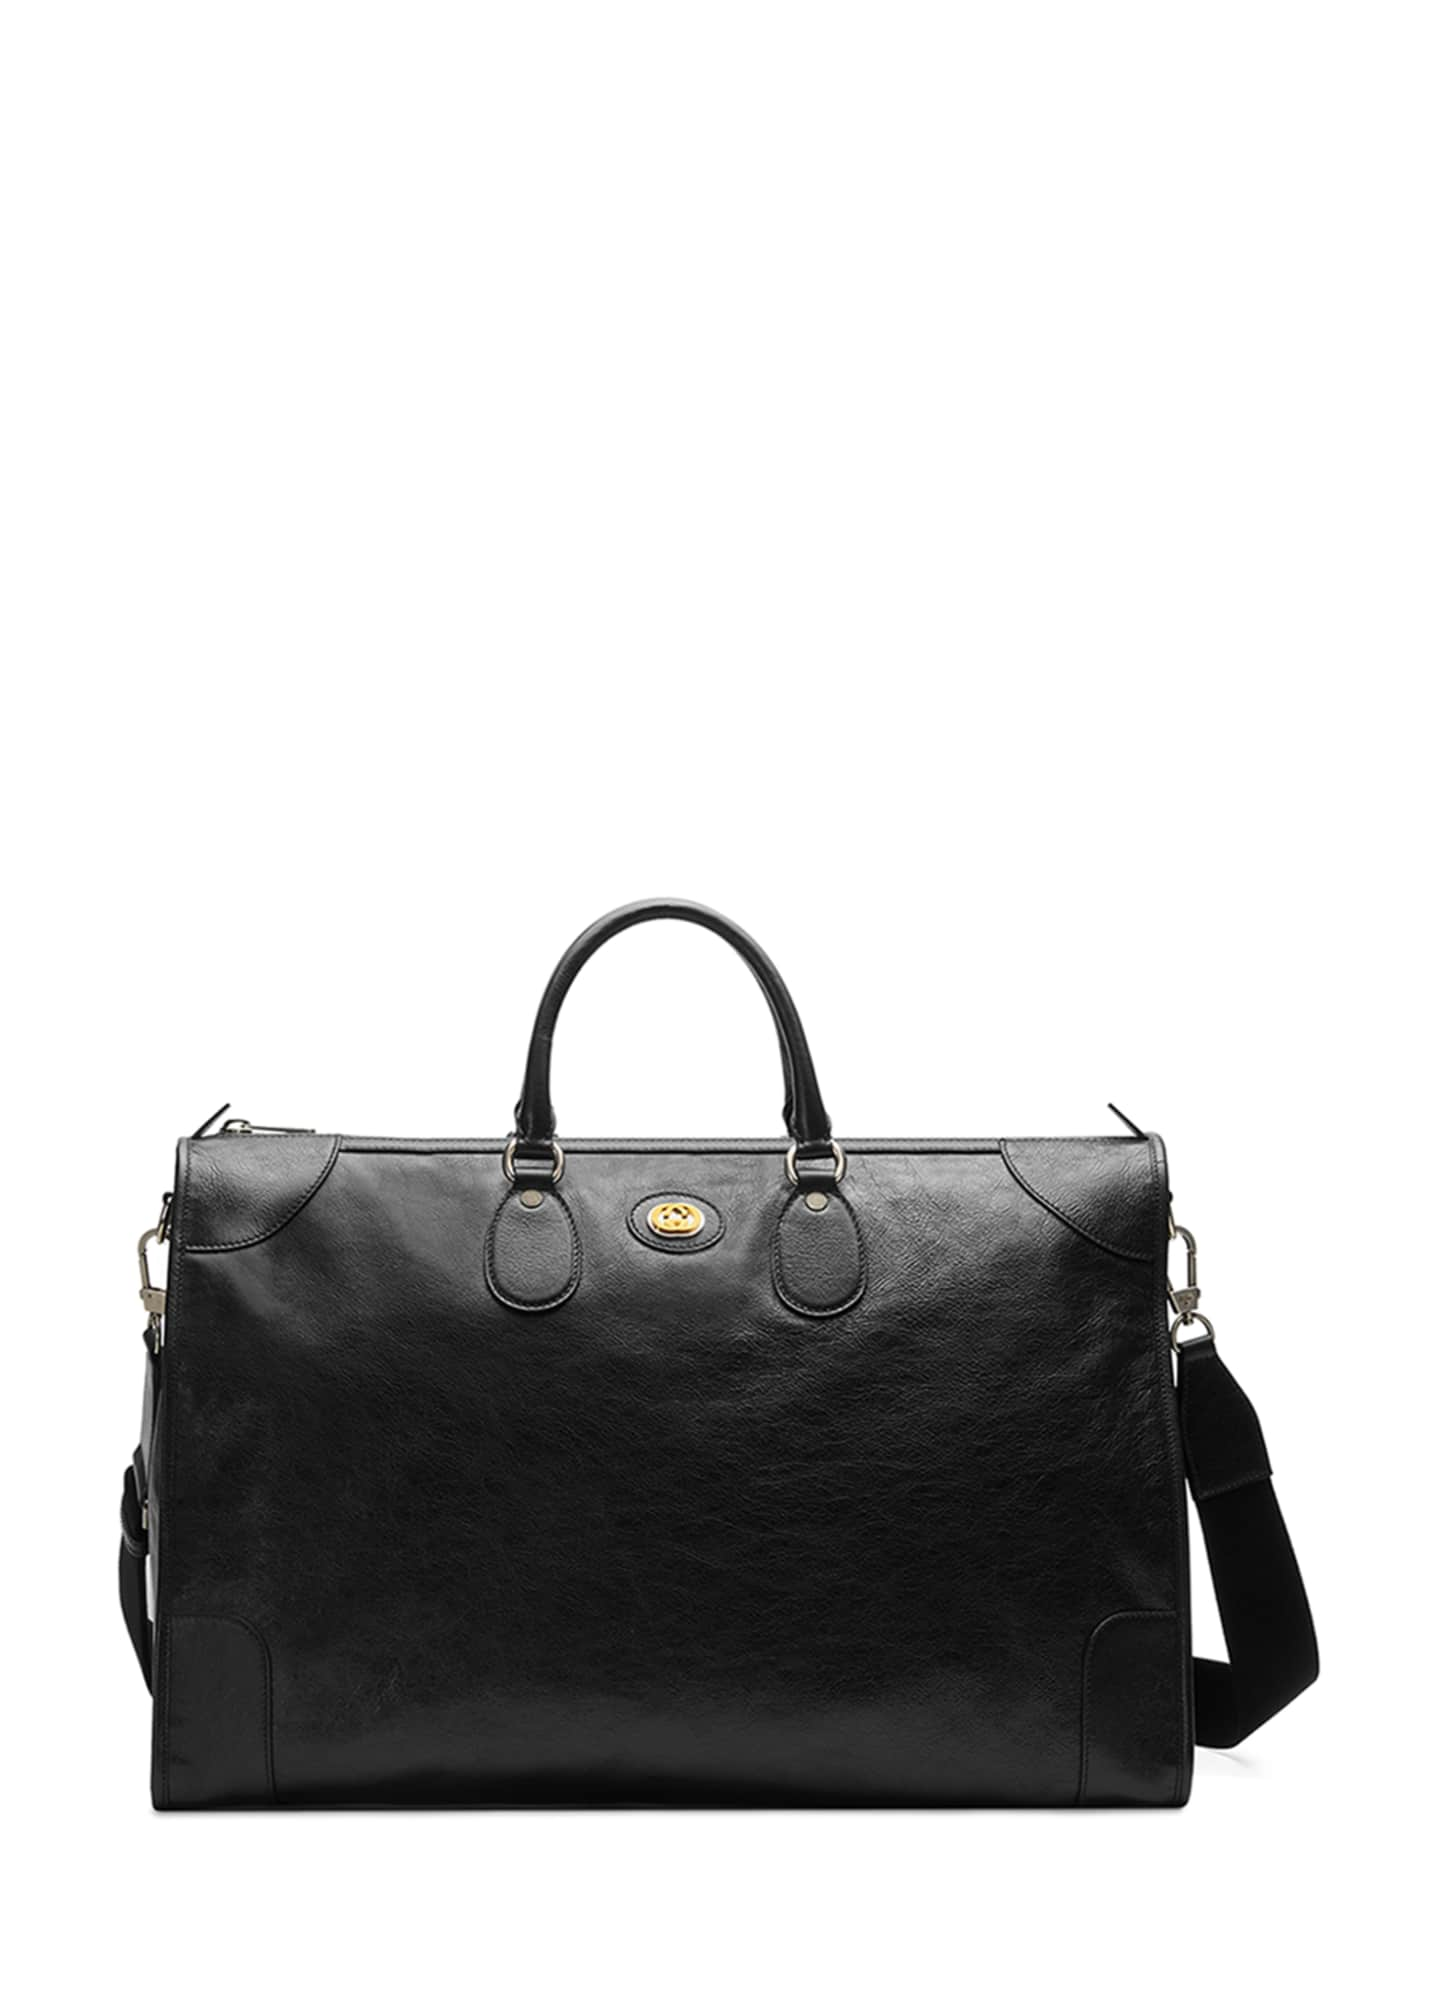 Gucci Men's Leather Weekender Duffel Bag